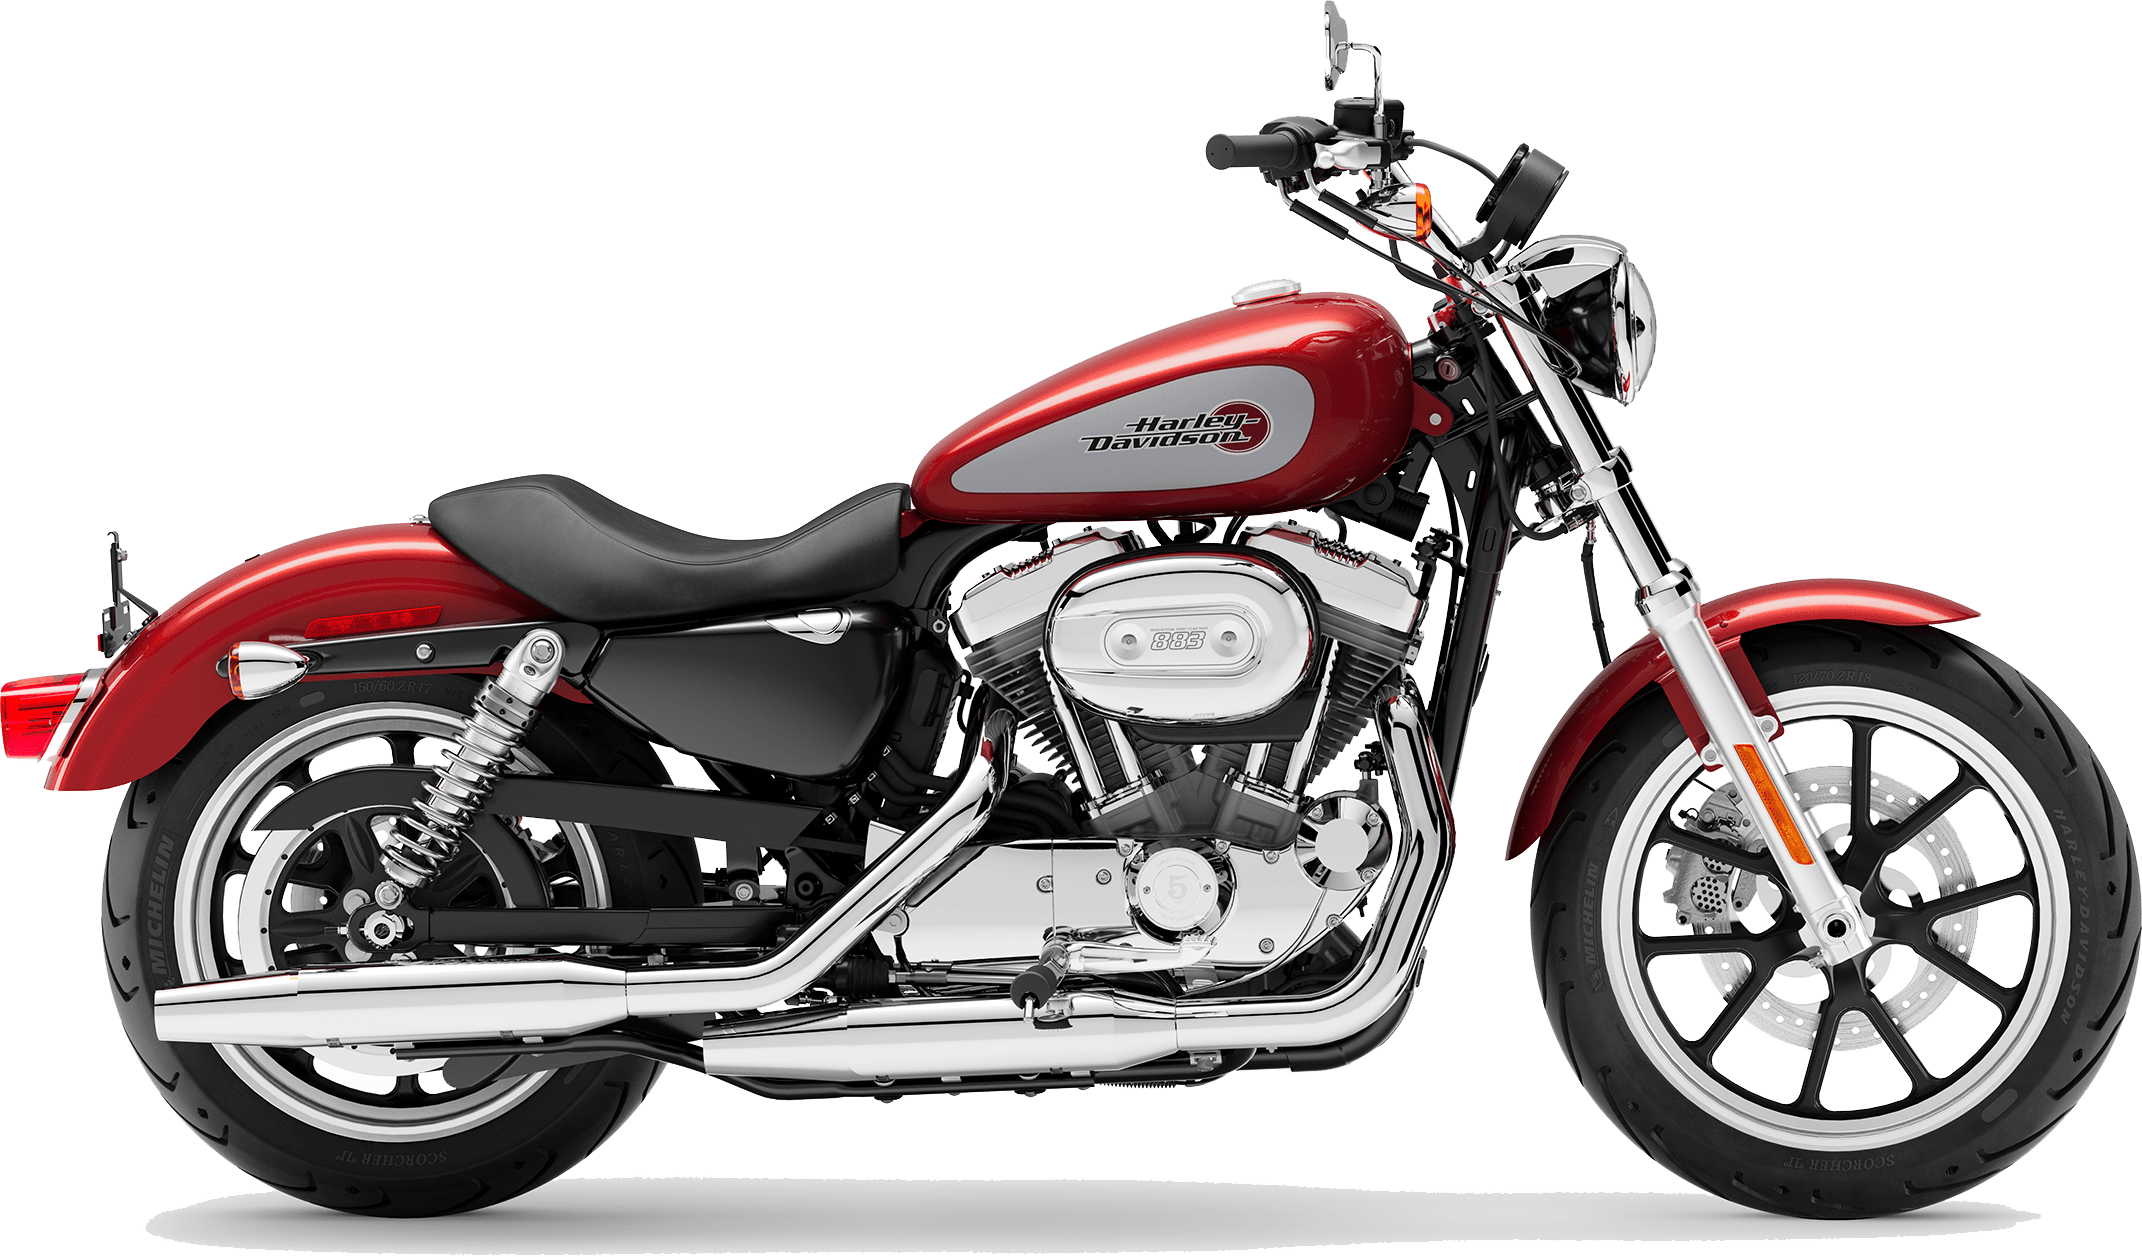 2019 Harley-Davidson H-D SuperLow Wicked Red Barracuda Silver